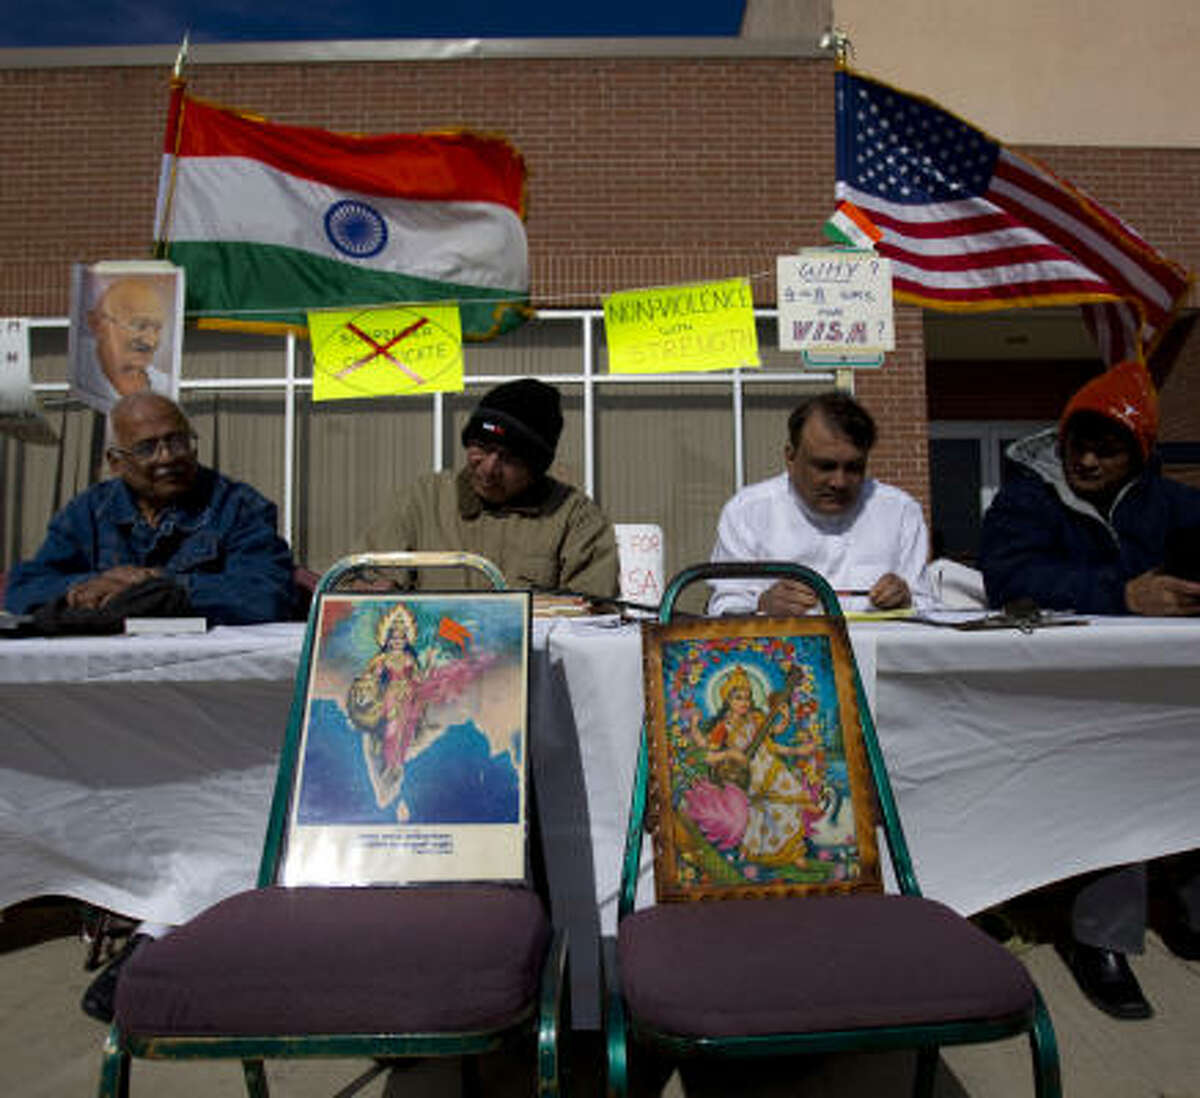 Lalit Chinoy, left, 74; Ramesh Shah, 66; P.V. Patel, 58, and P.M. Desai, 62, all fast for 24 hours and join about 30 others as they gather outside the Vallabh Priti Seva Samaj temple Sunday to protest against the Consulate General of India in Houston.